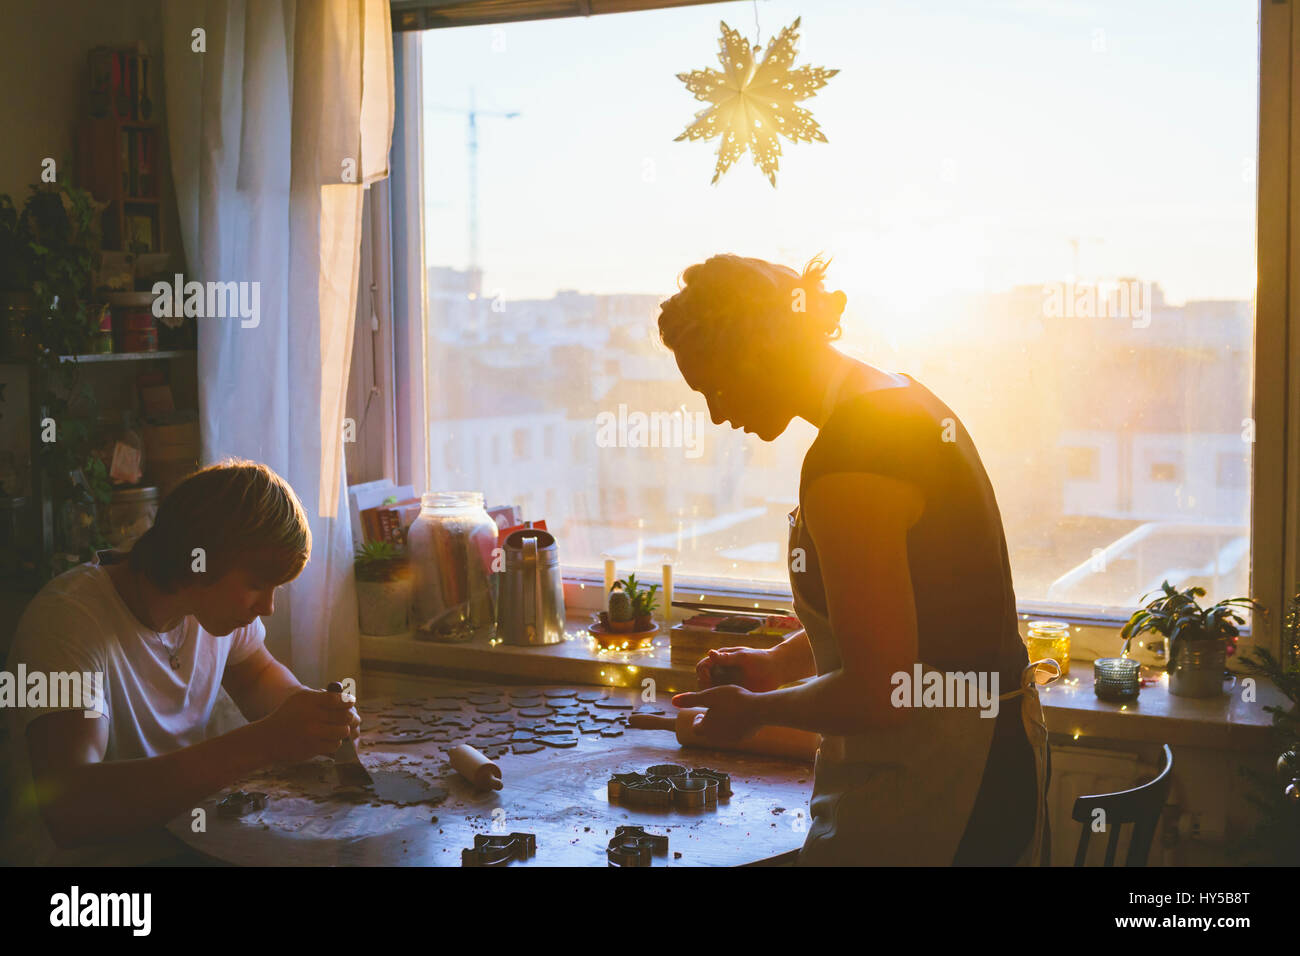 La Finlande, Helsinki, couple preparing christmas cookies Photo Stock